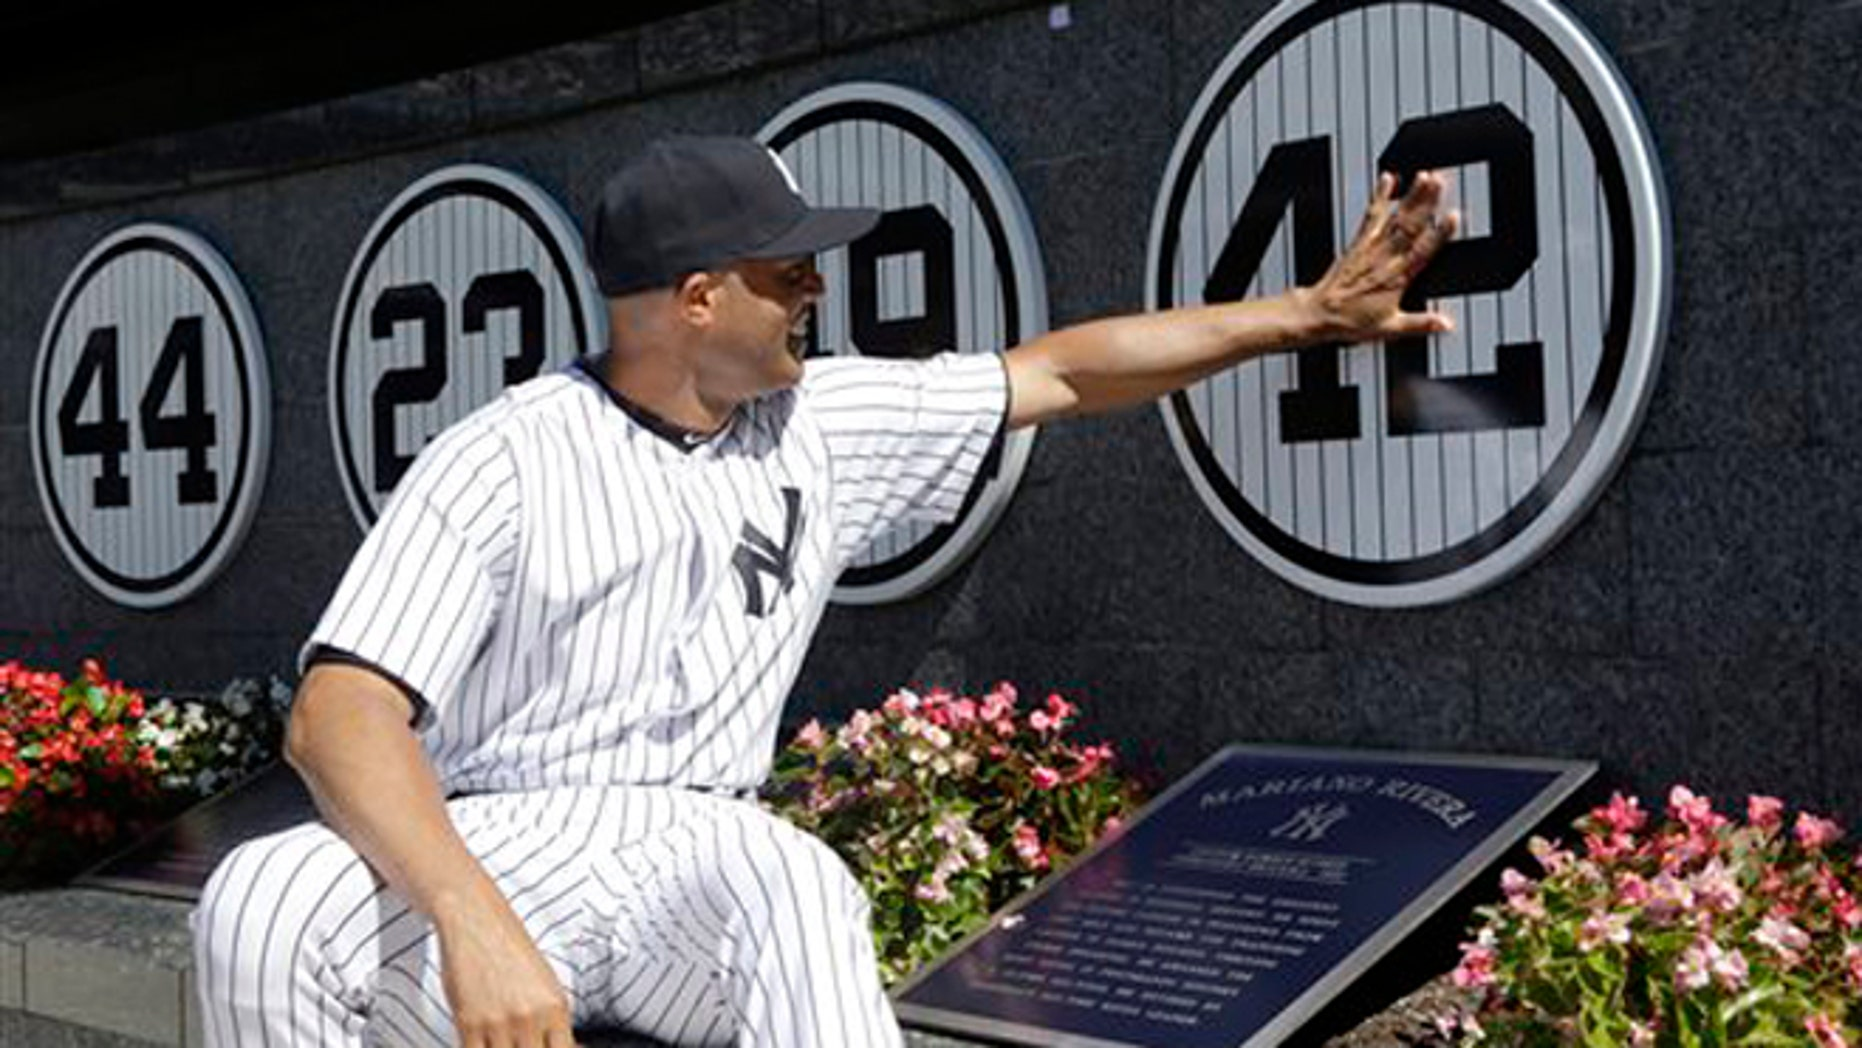 526c4a1b463 Mariano Rivera touches his plaque in Monument Park as he is honored in a  pregame ceremony